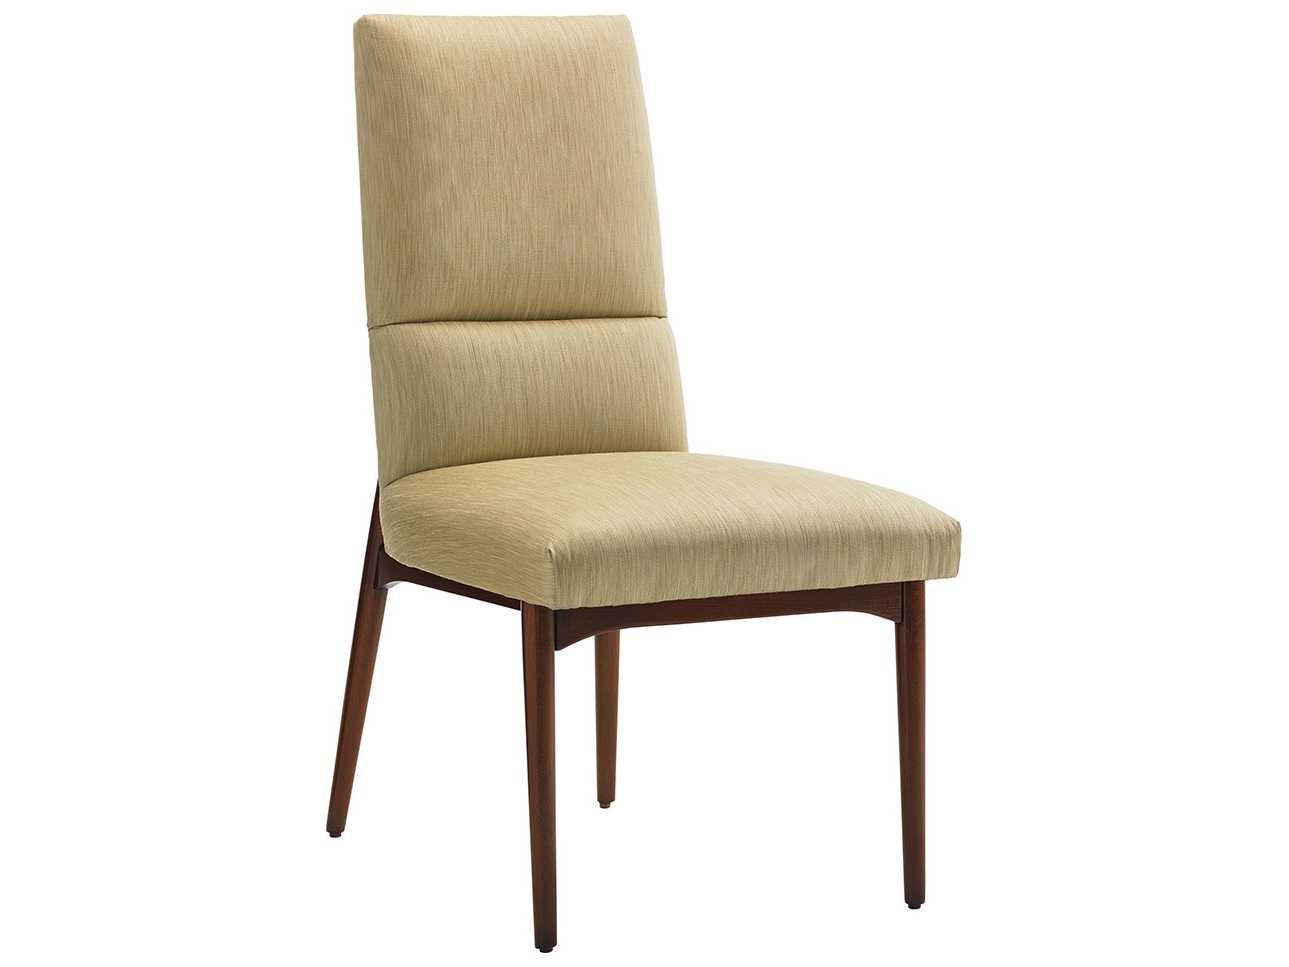 lexington dining chairs plastic adirondack chair with cup holder take five chelsea seville and rosewood side